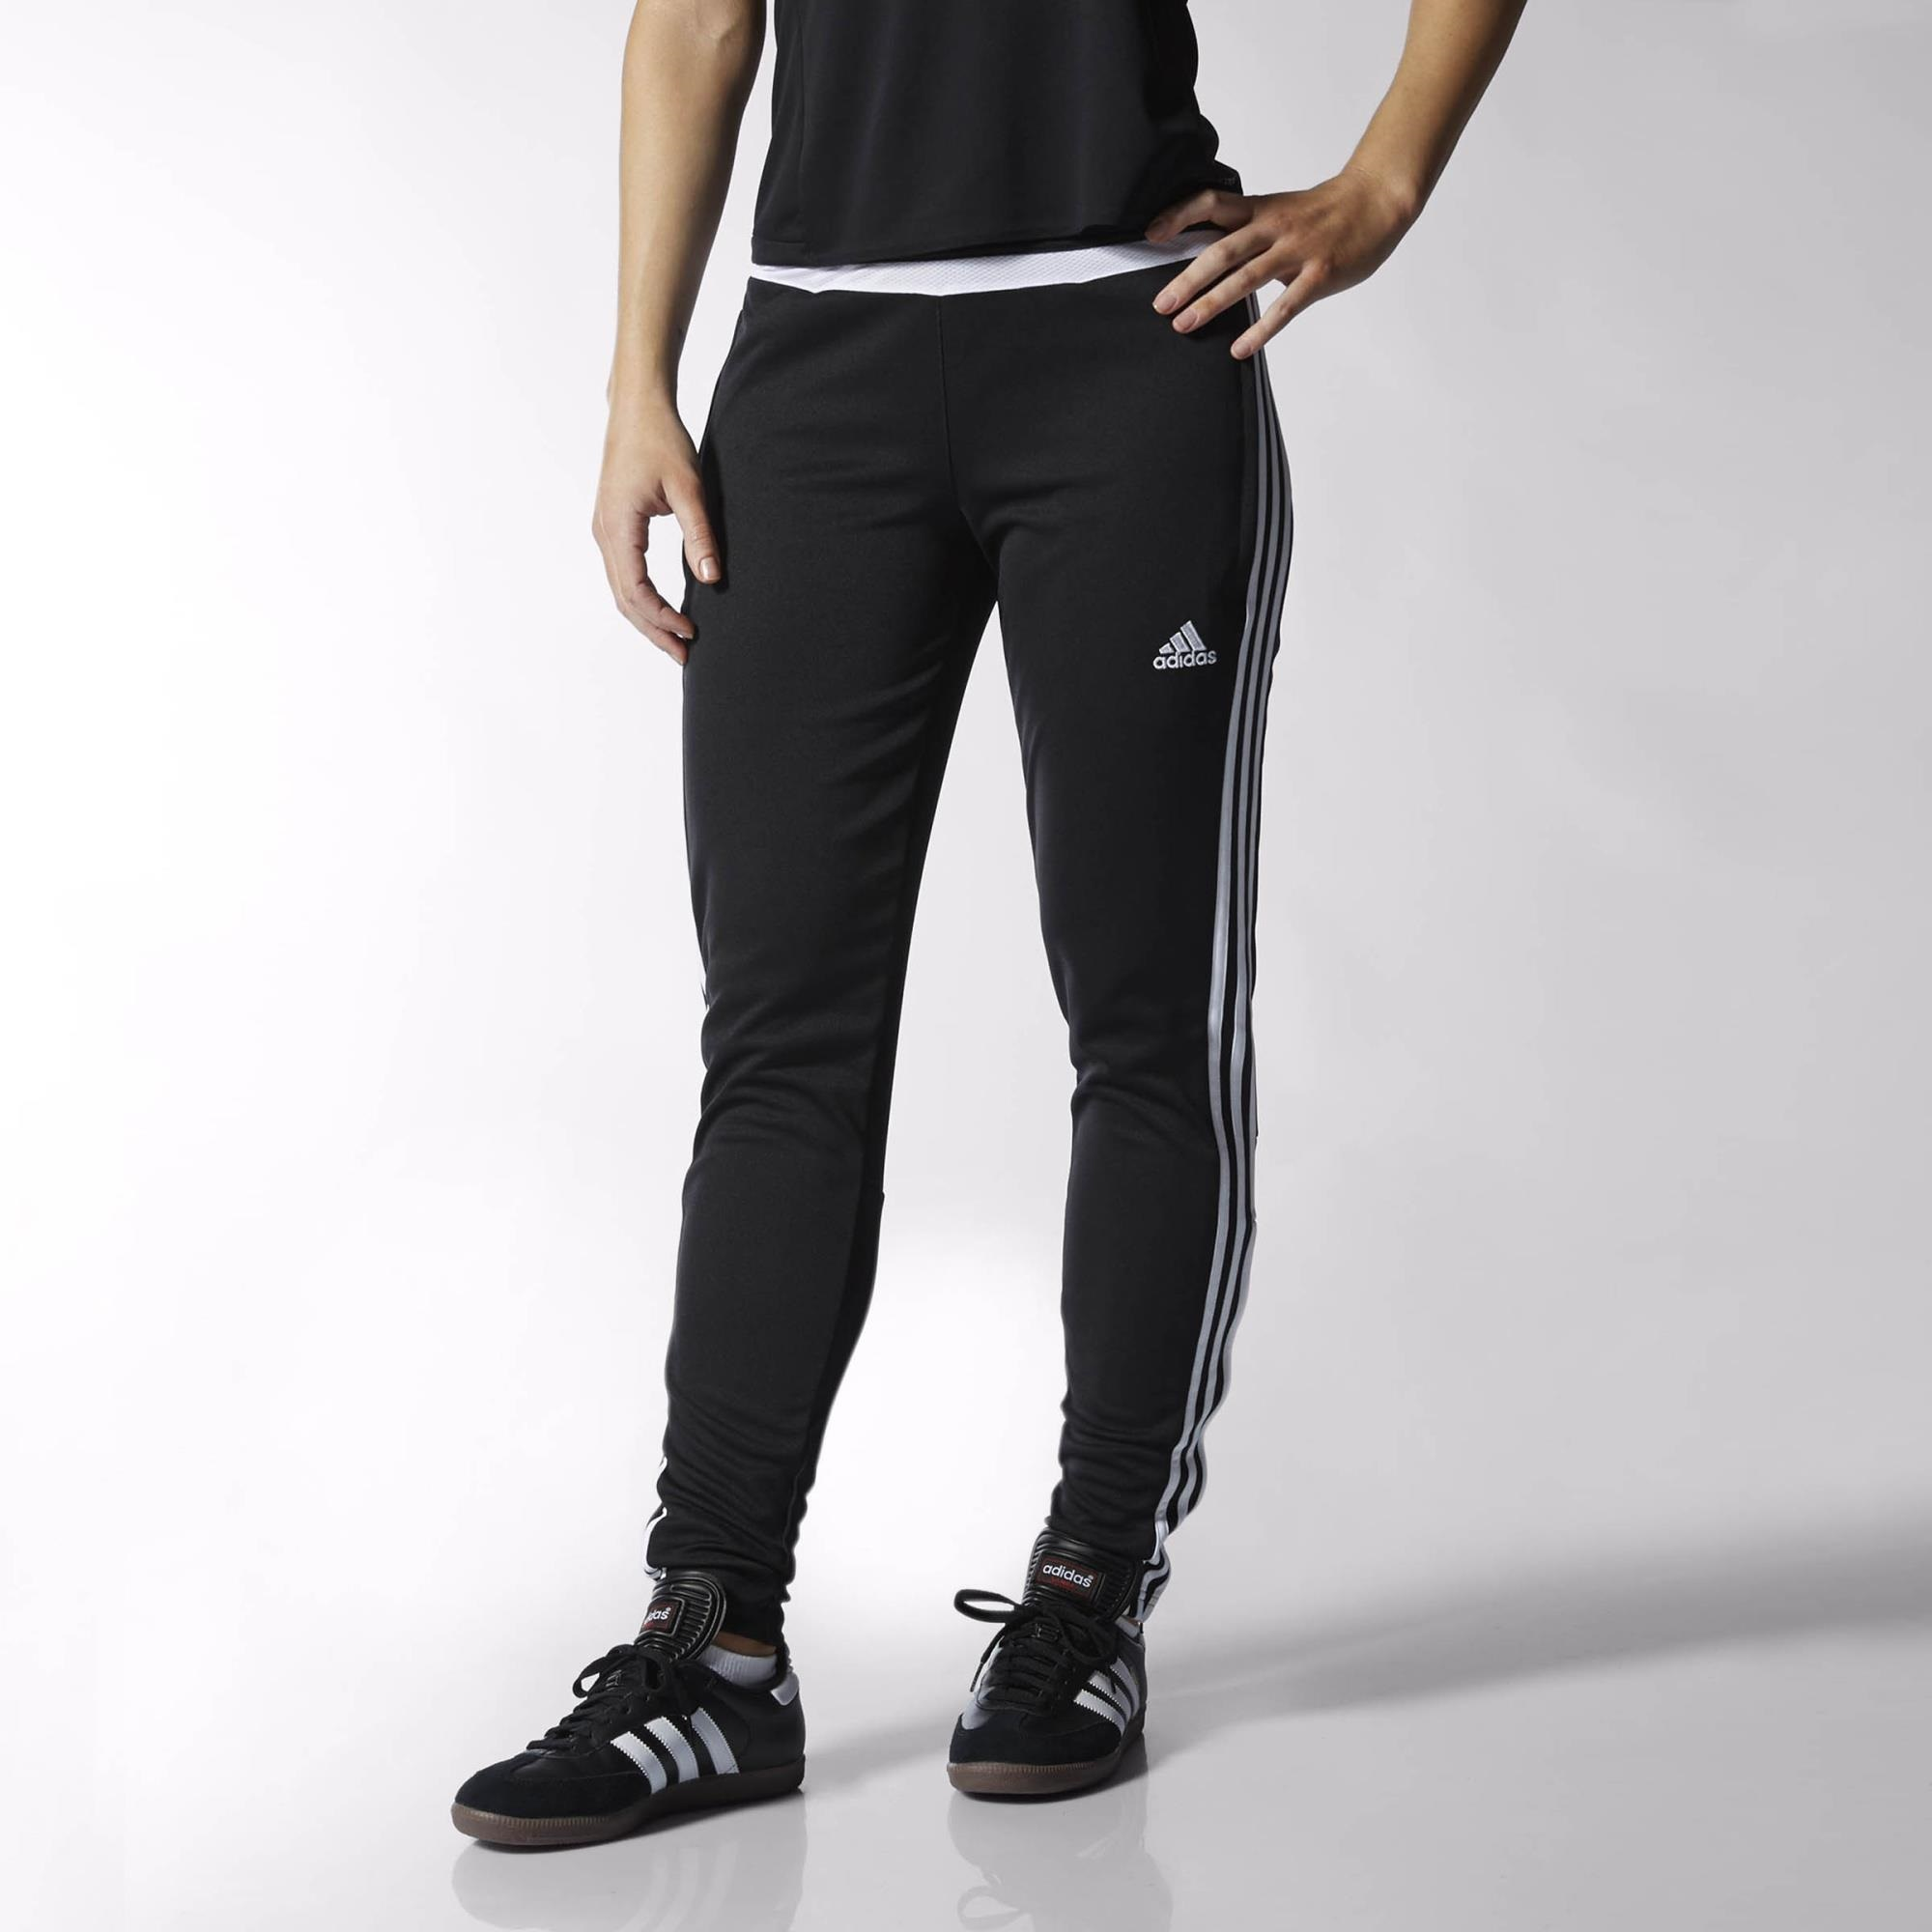 e8b6c1db3bea adidas Tiro 15 Training Pants - Black